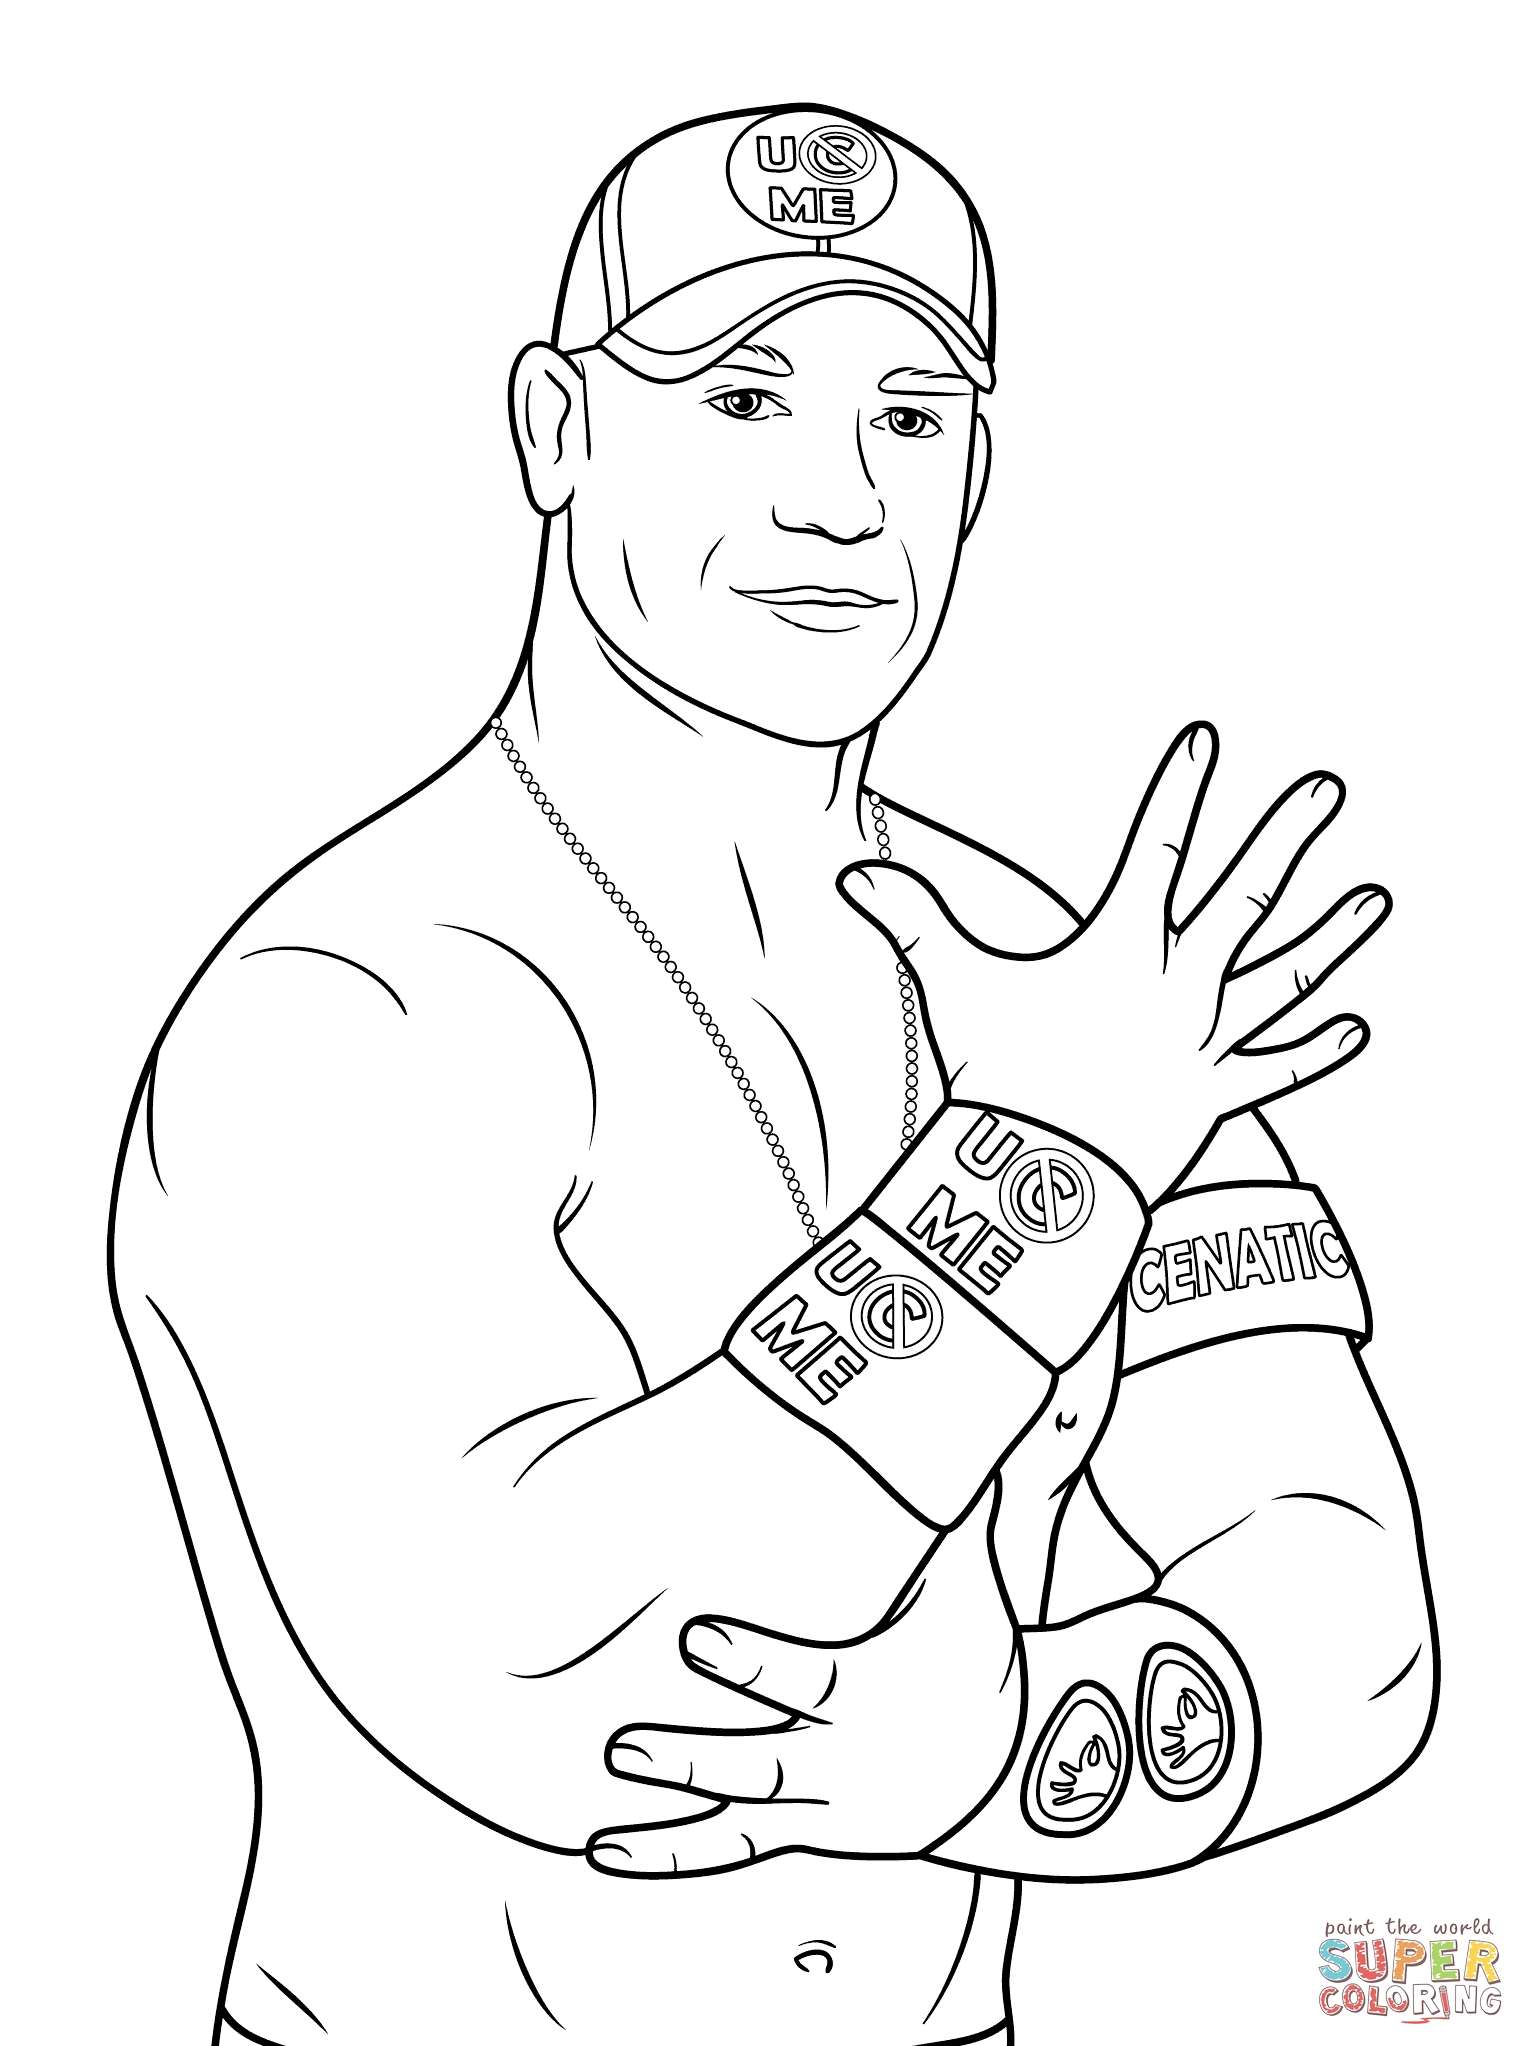 Wrestling coloring pages printable - John Cena Coloring Page